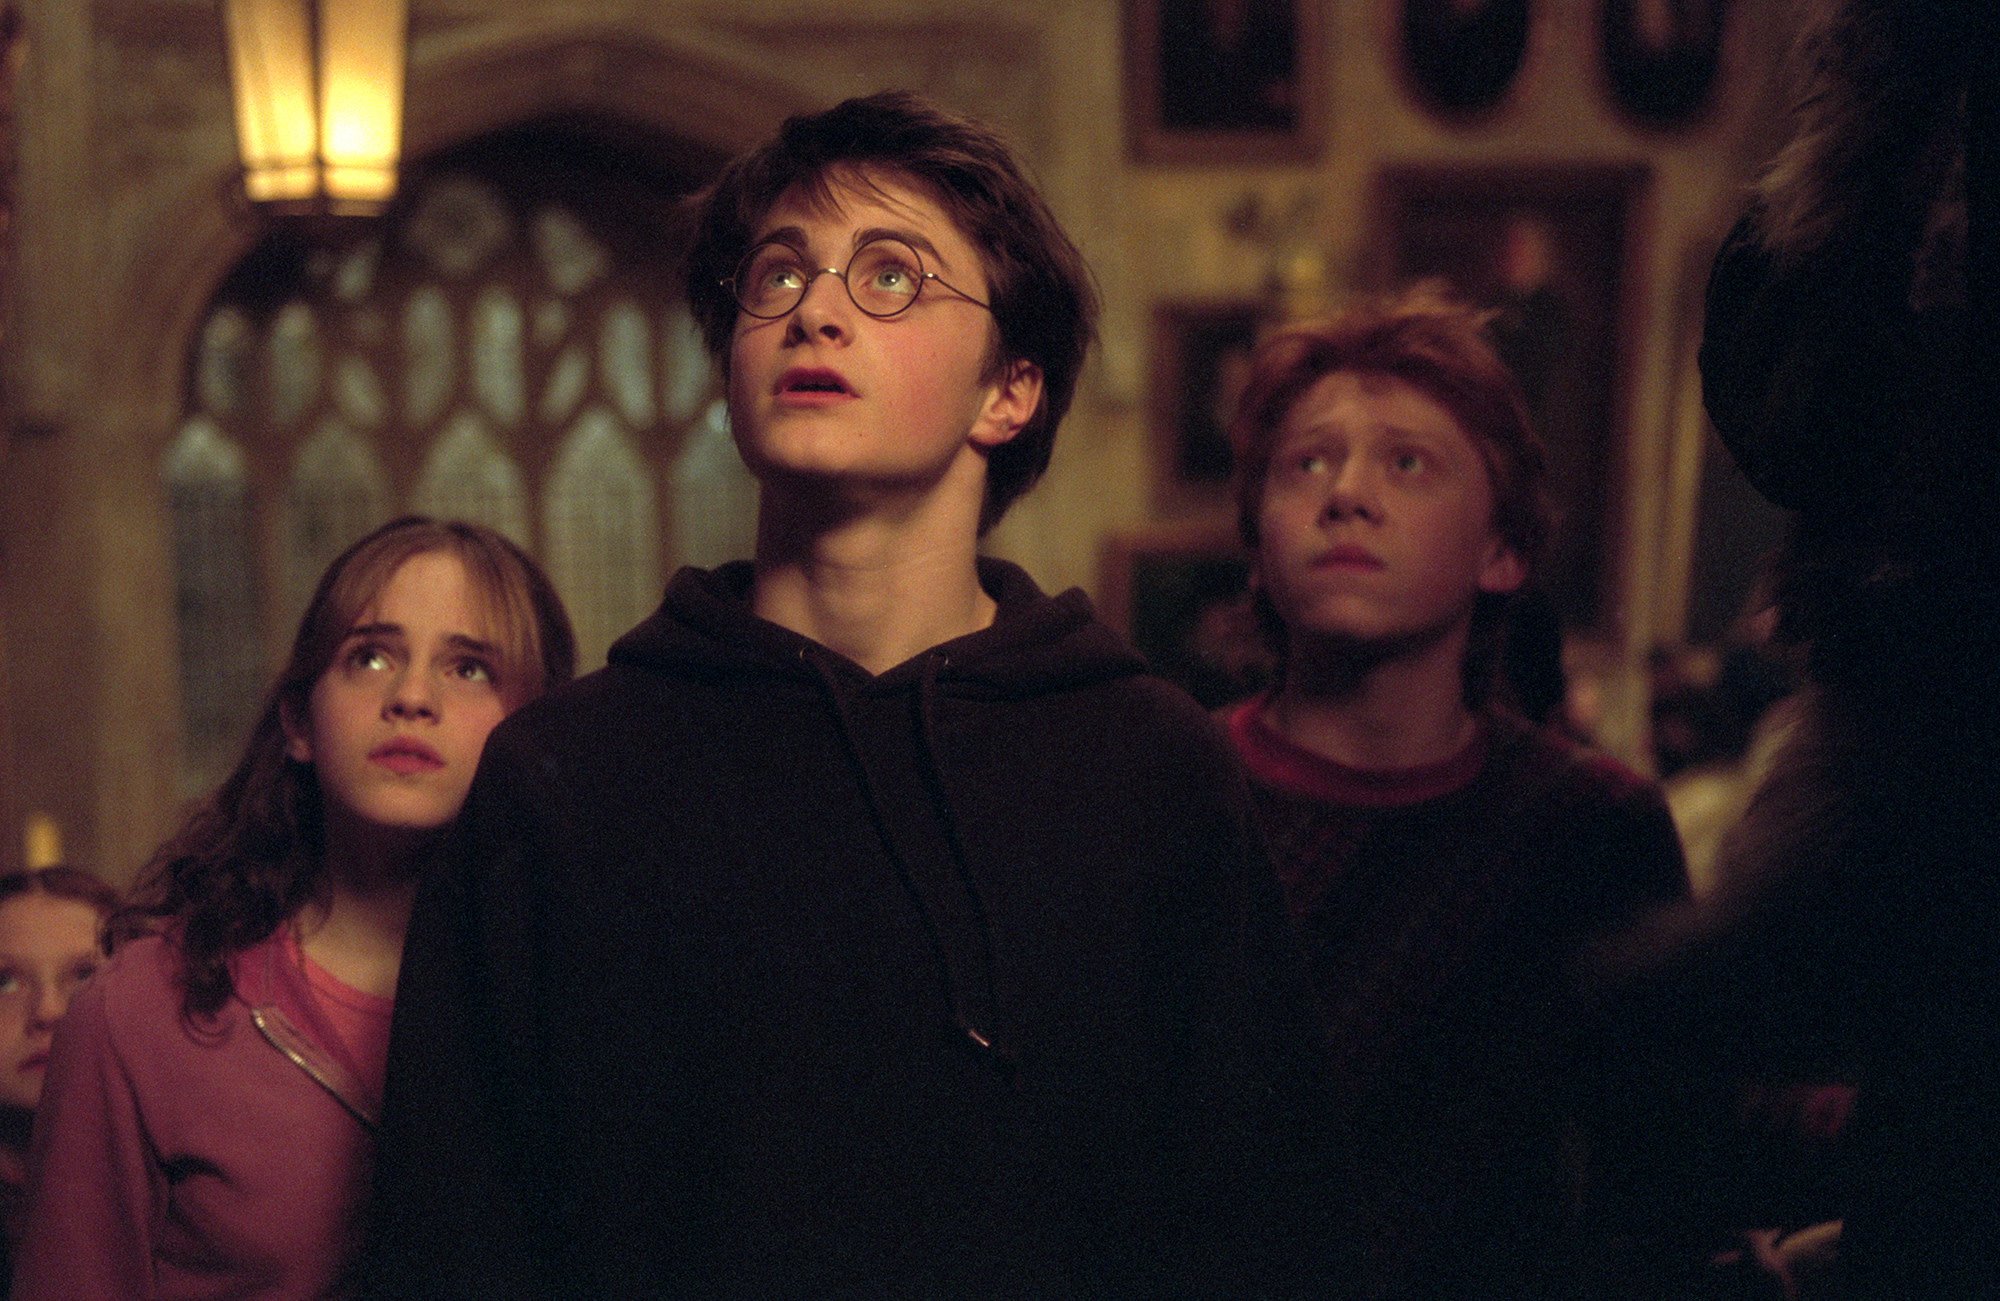 WB-HP-F3-prisoner-of-azkaban-harry-ron-hermione